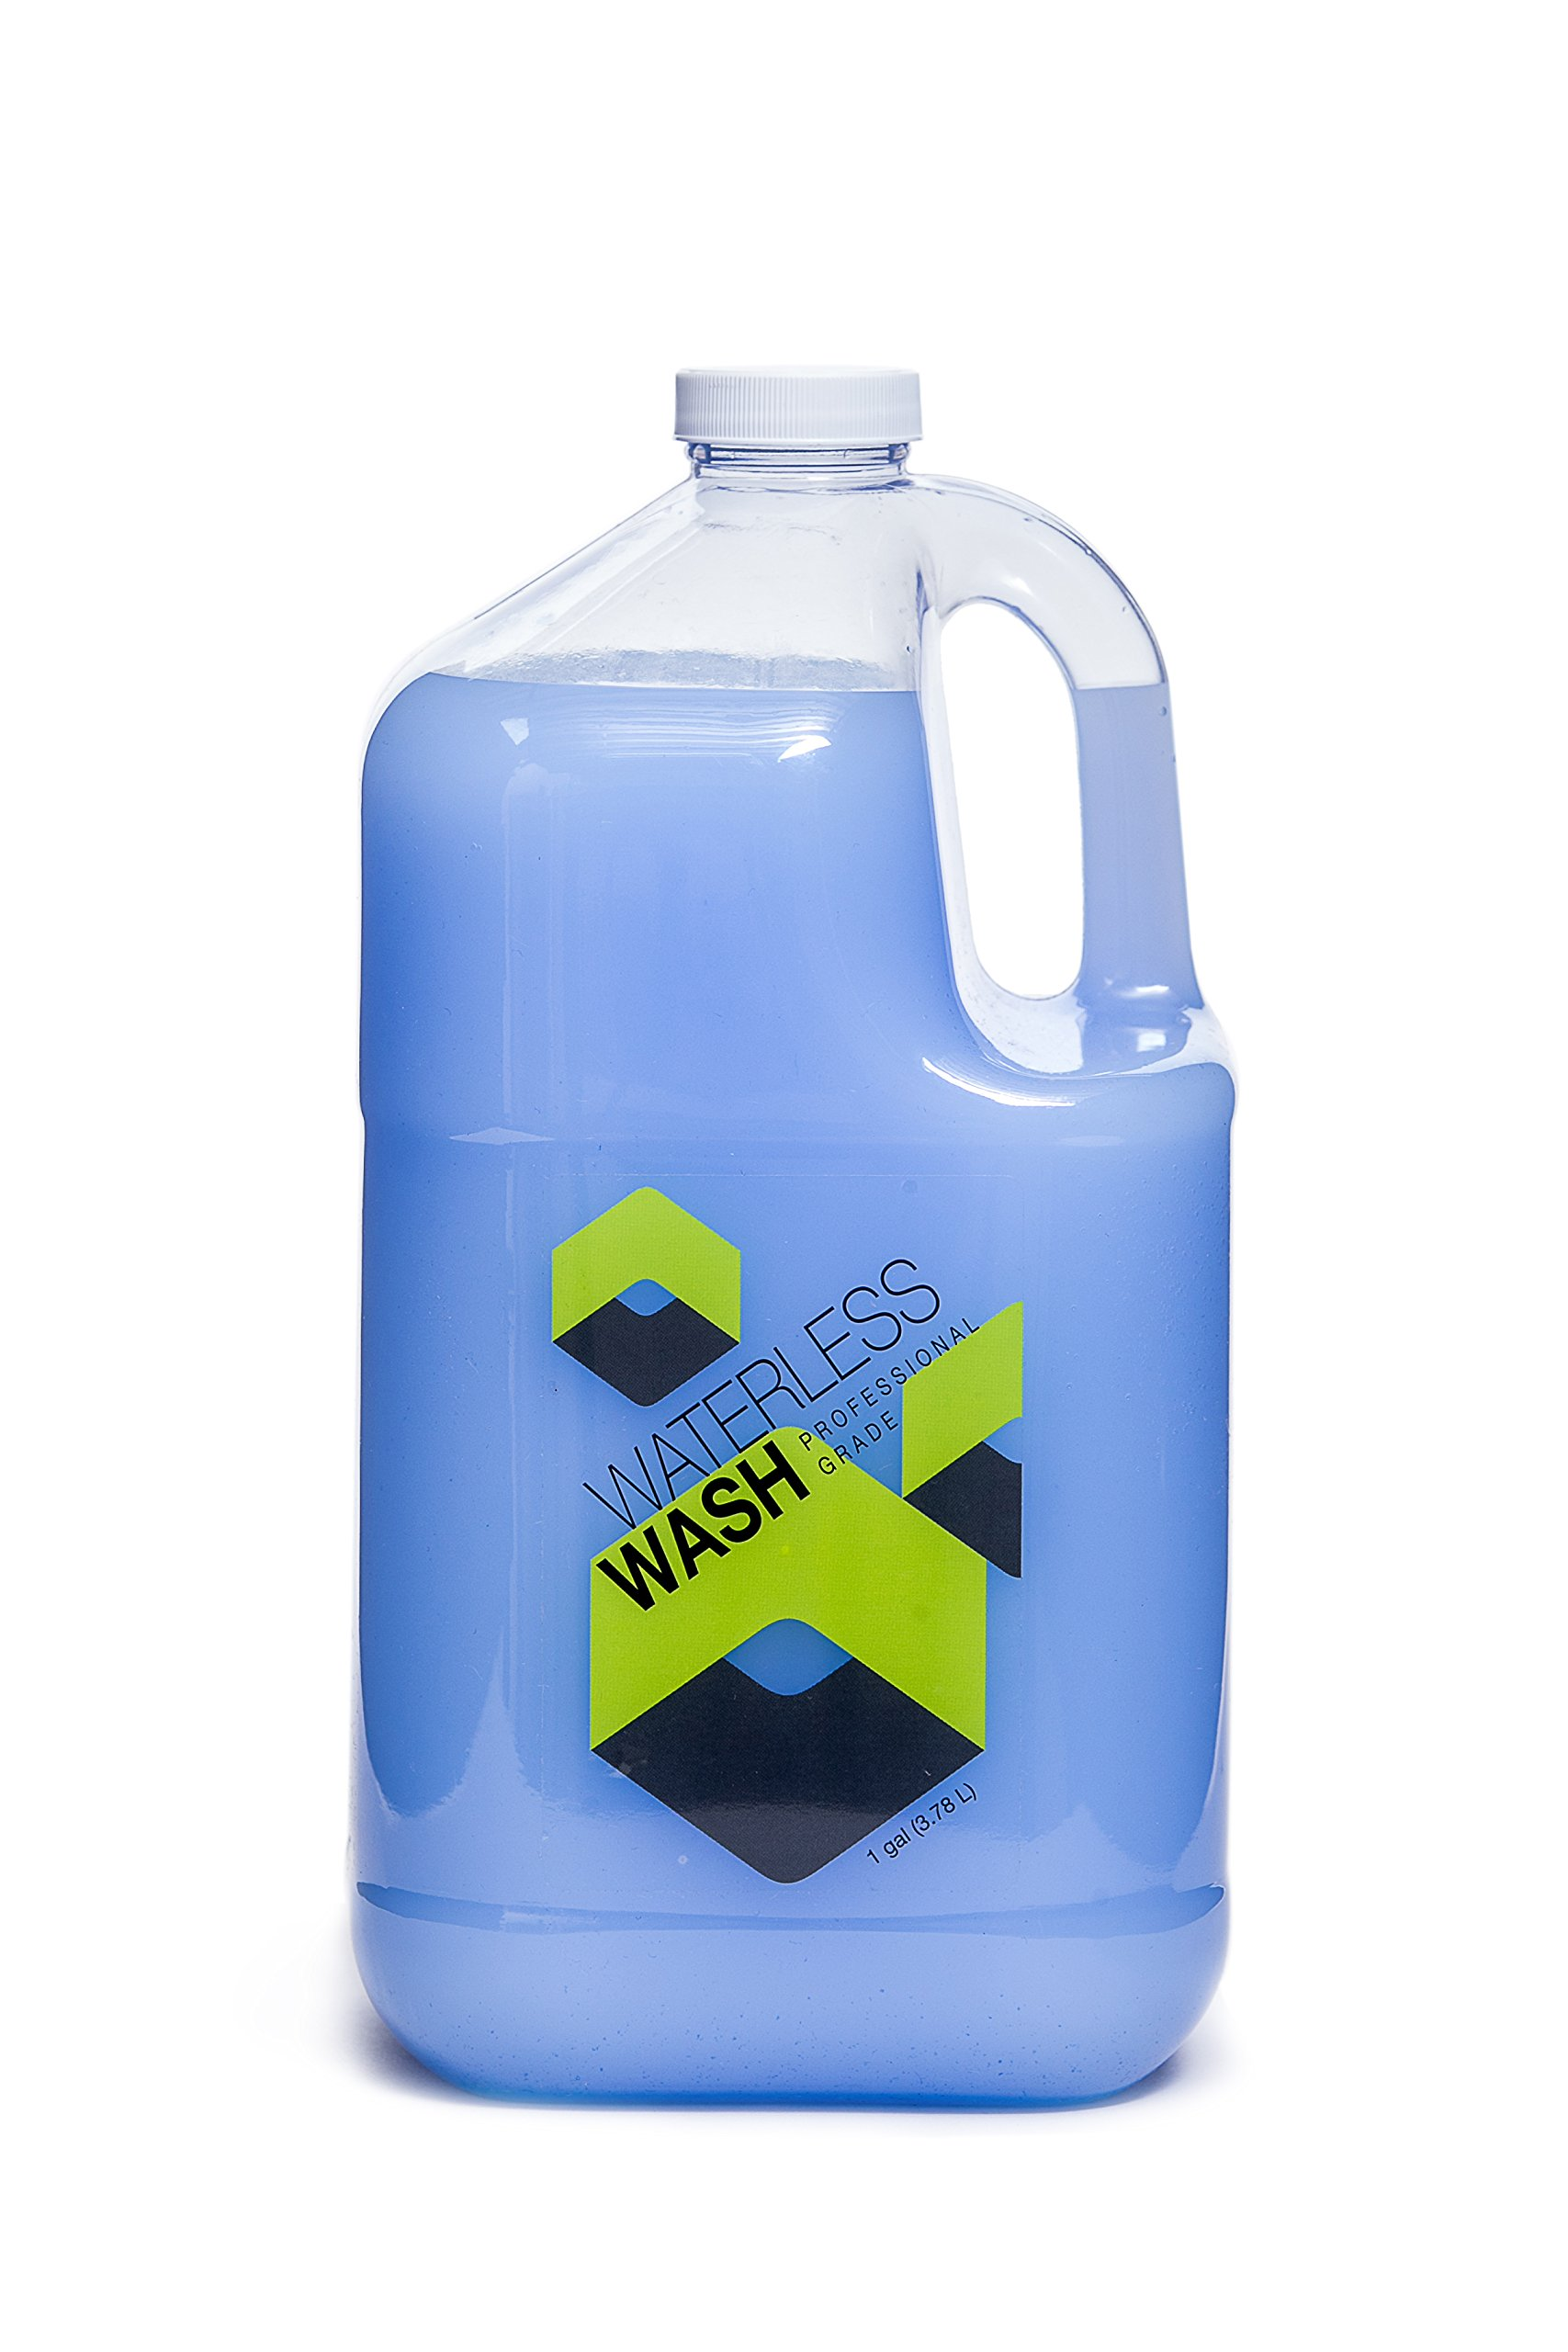 Armour Car Care Hyper-Active Eco-Friendly Auto 1 Gallon Waterless Wash and Wax ready to use